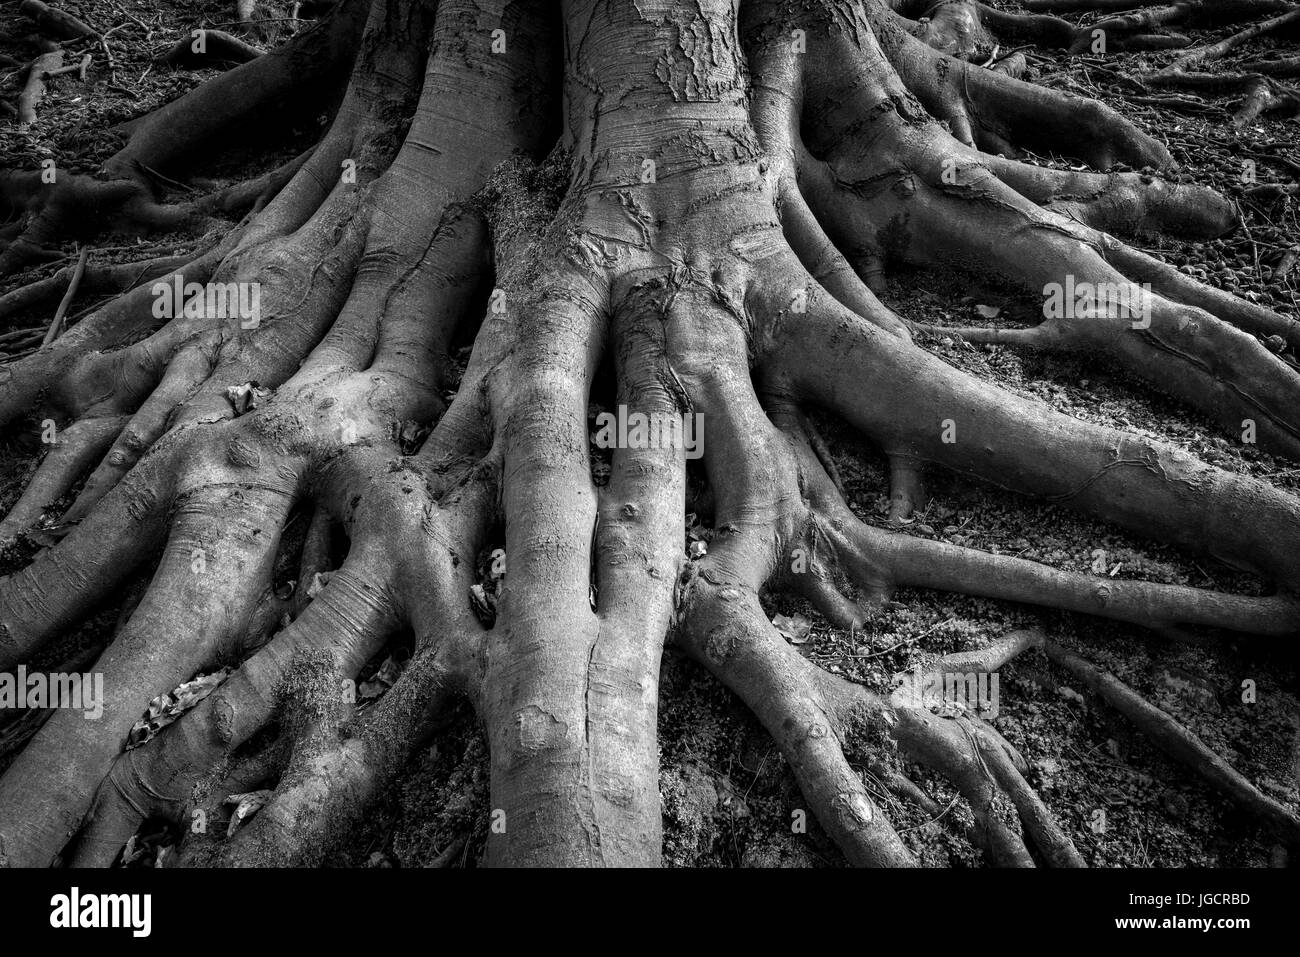 Black and white image of creepy, spooky tree roots. An old Beech tree with exposed roots at the base of the trunk. - Stock Image